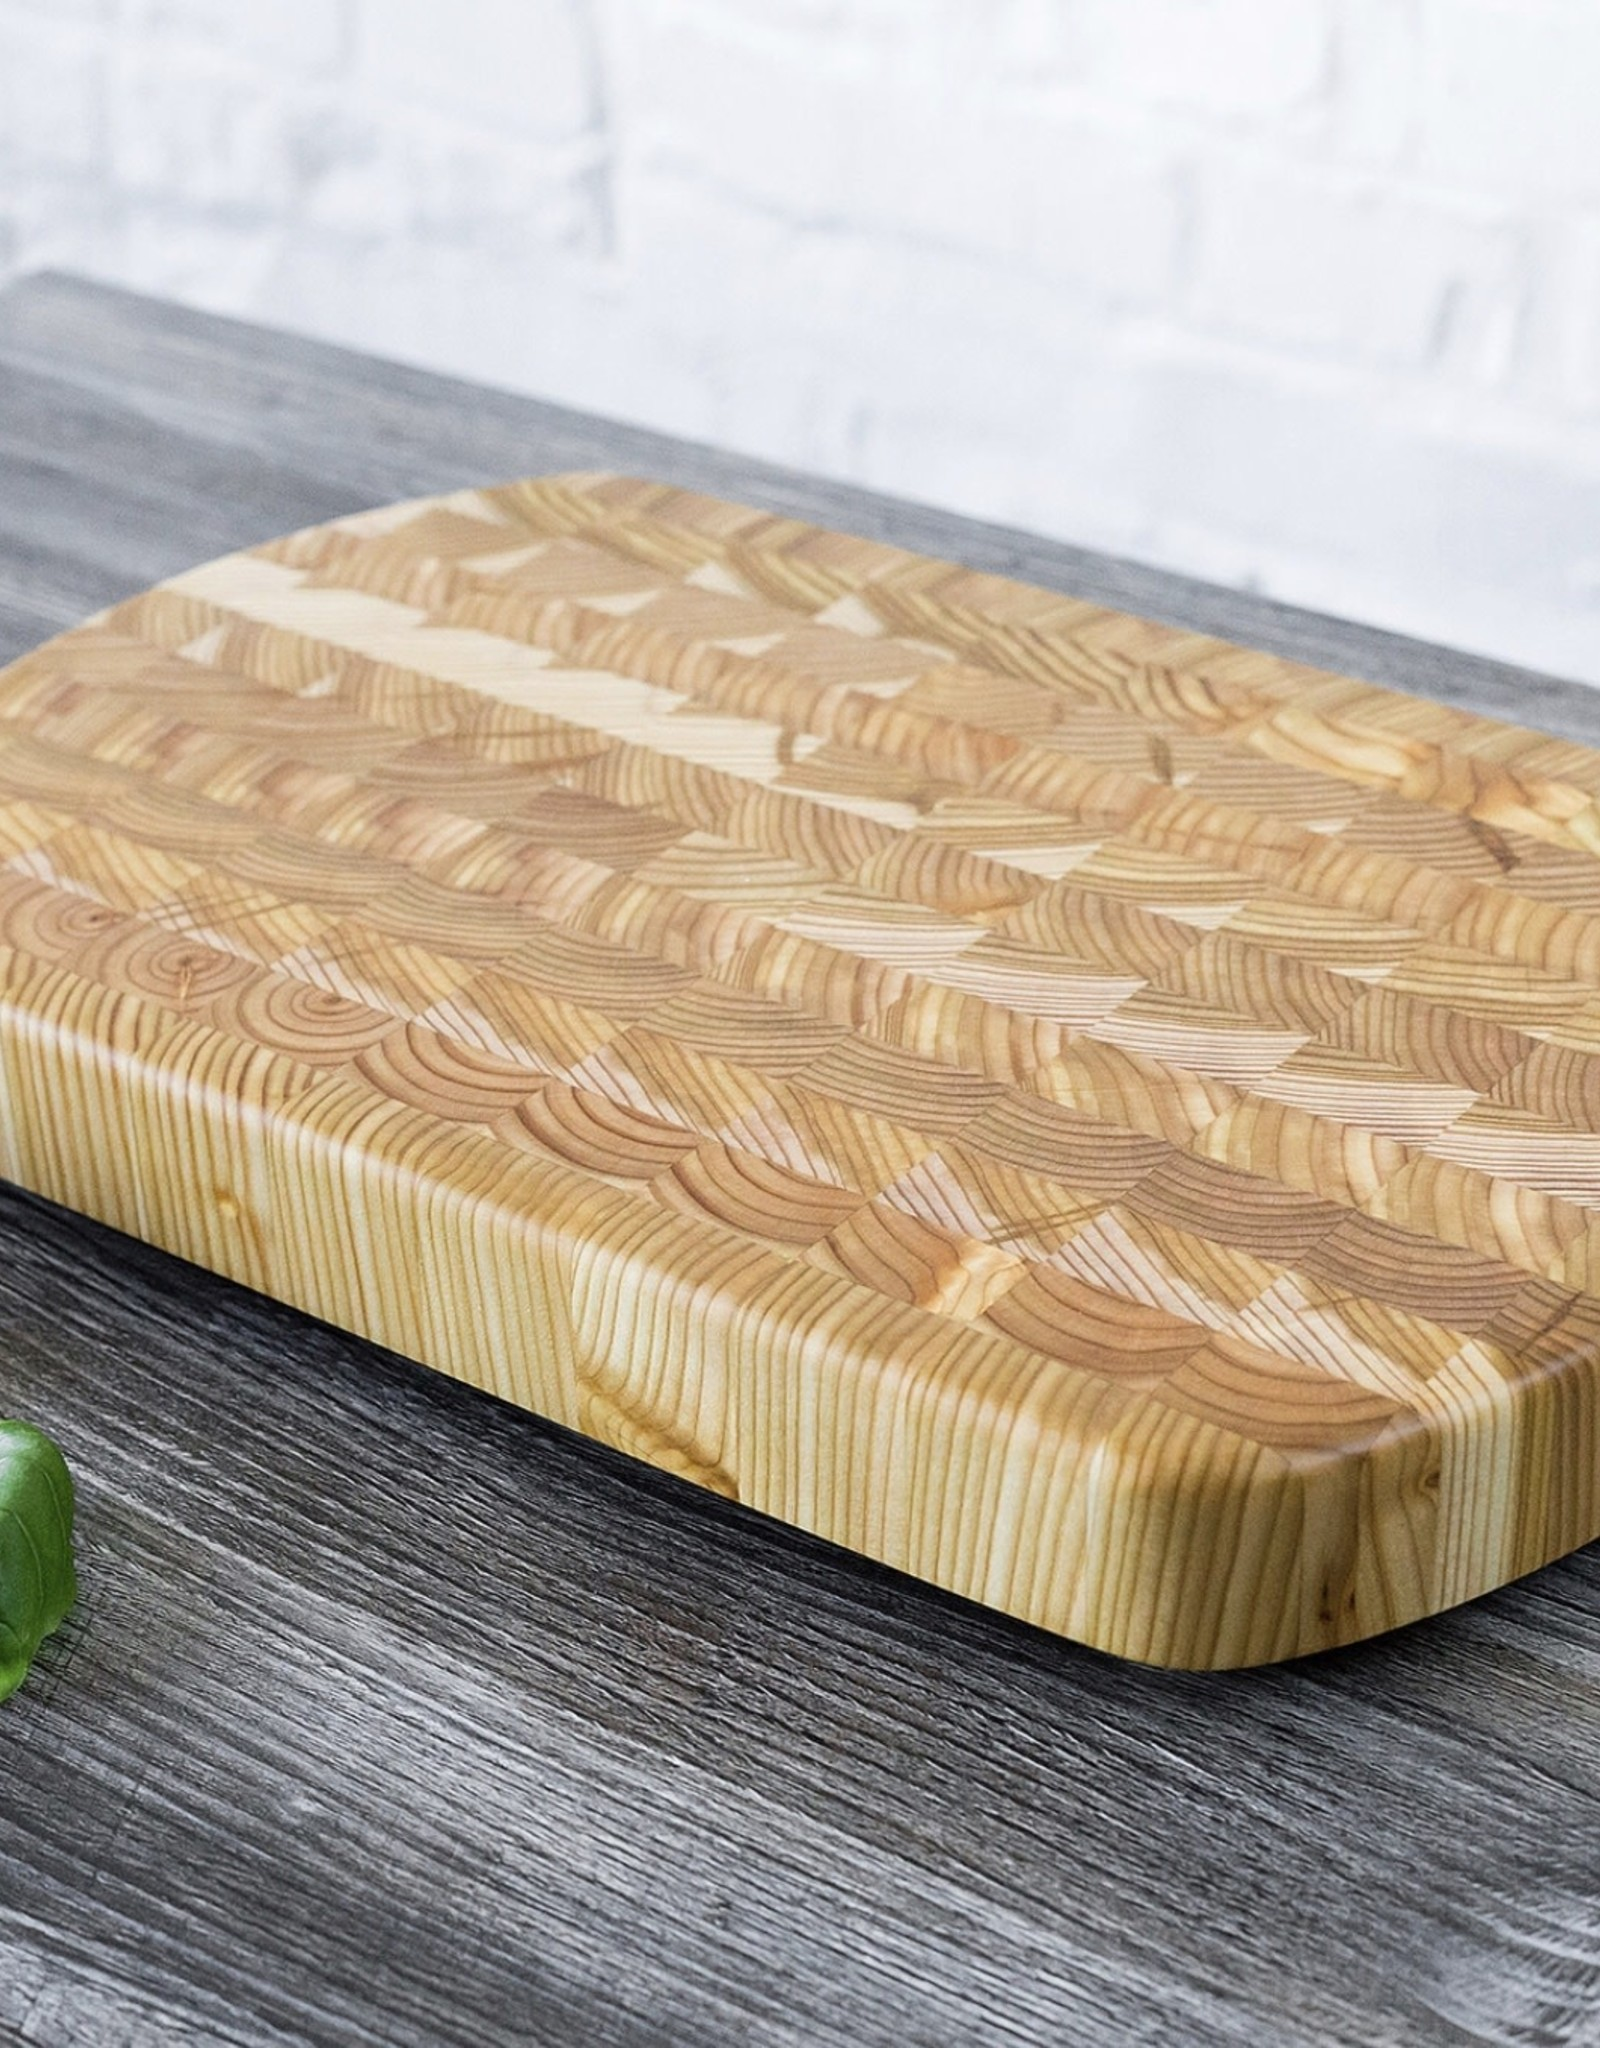 Wood Cutting Board Curved End #1 15 x 9.5 x 1.5 inches